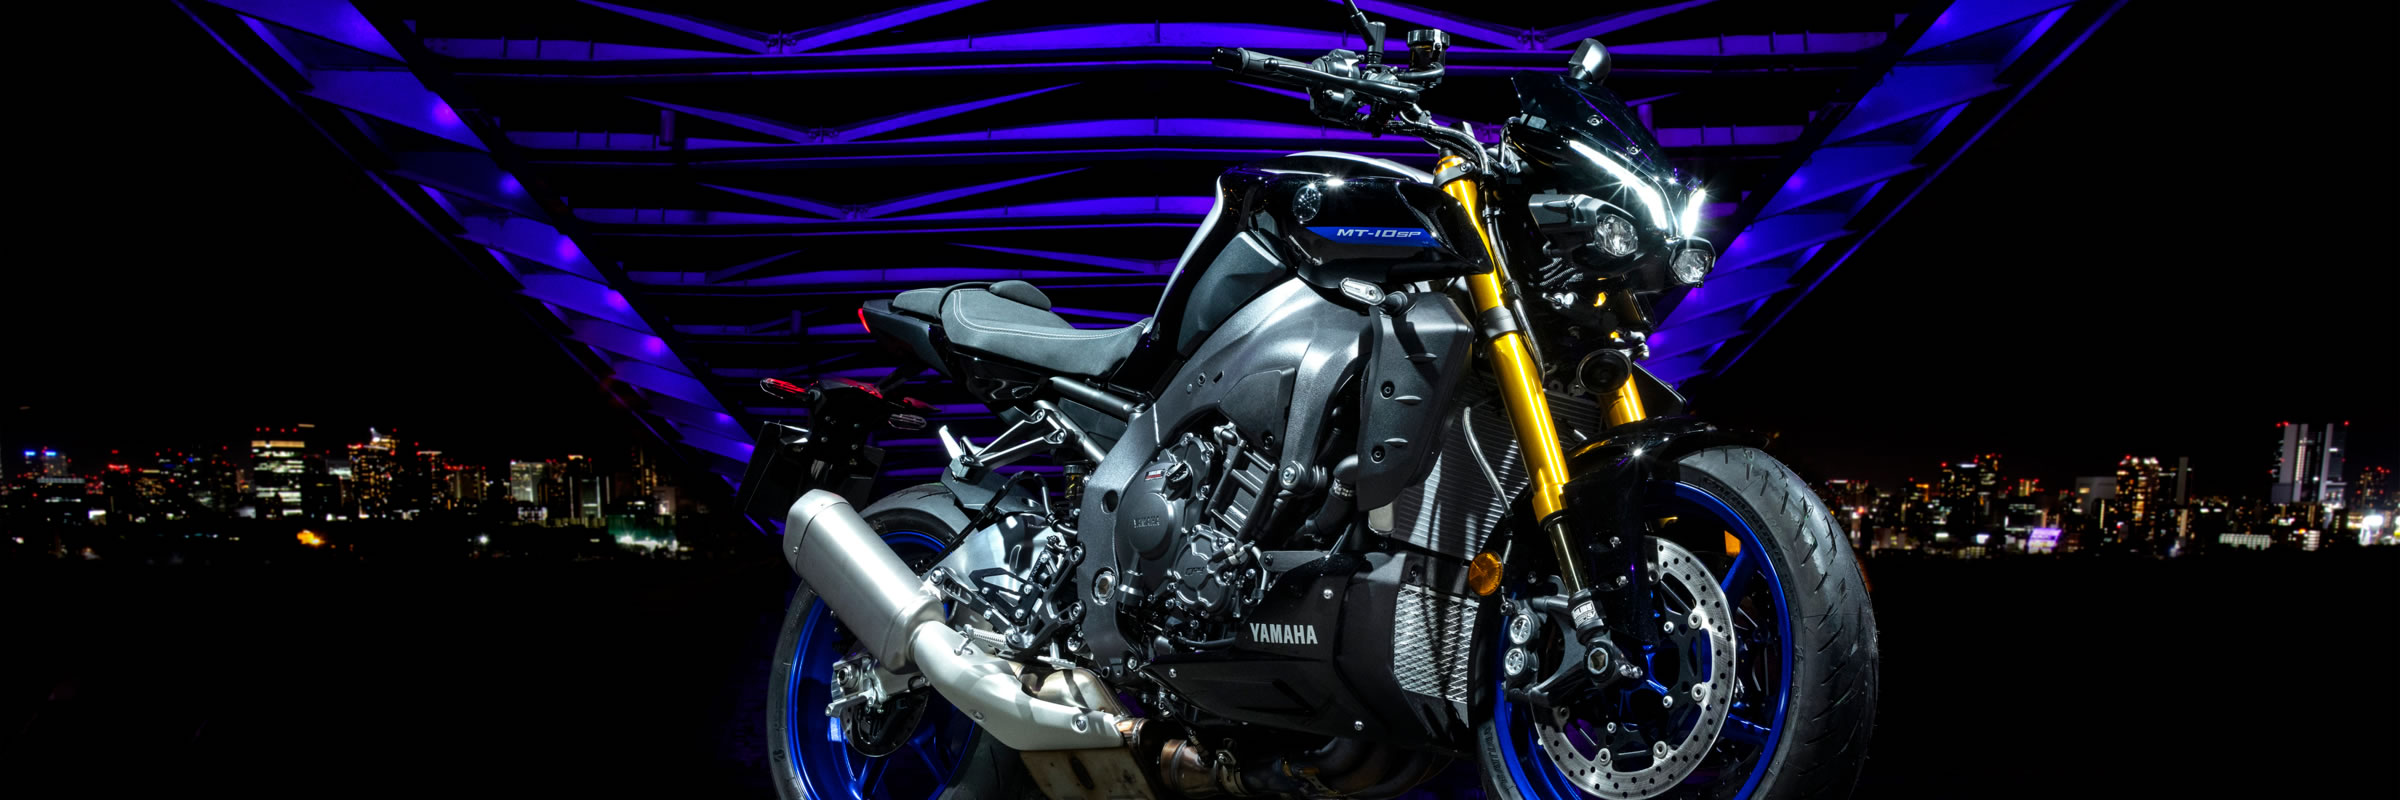 YZF-R1  Developed without compromise and constructed with the most sophisticated engine and chassis technology, the new YZF-R1 is the ultimate Yamaha supersport.